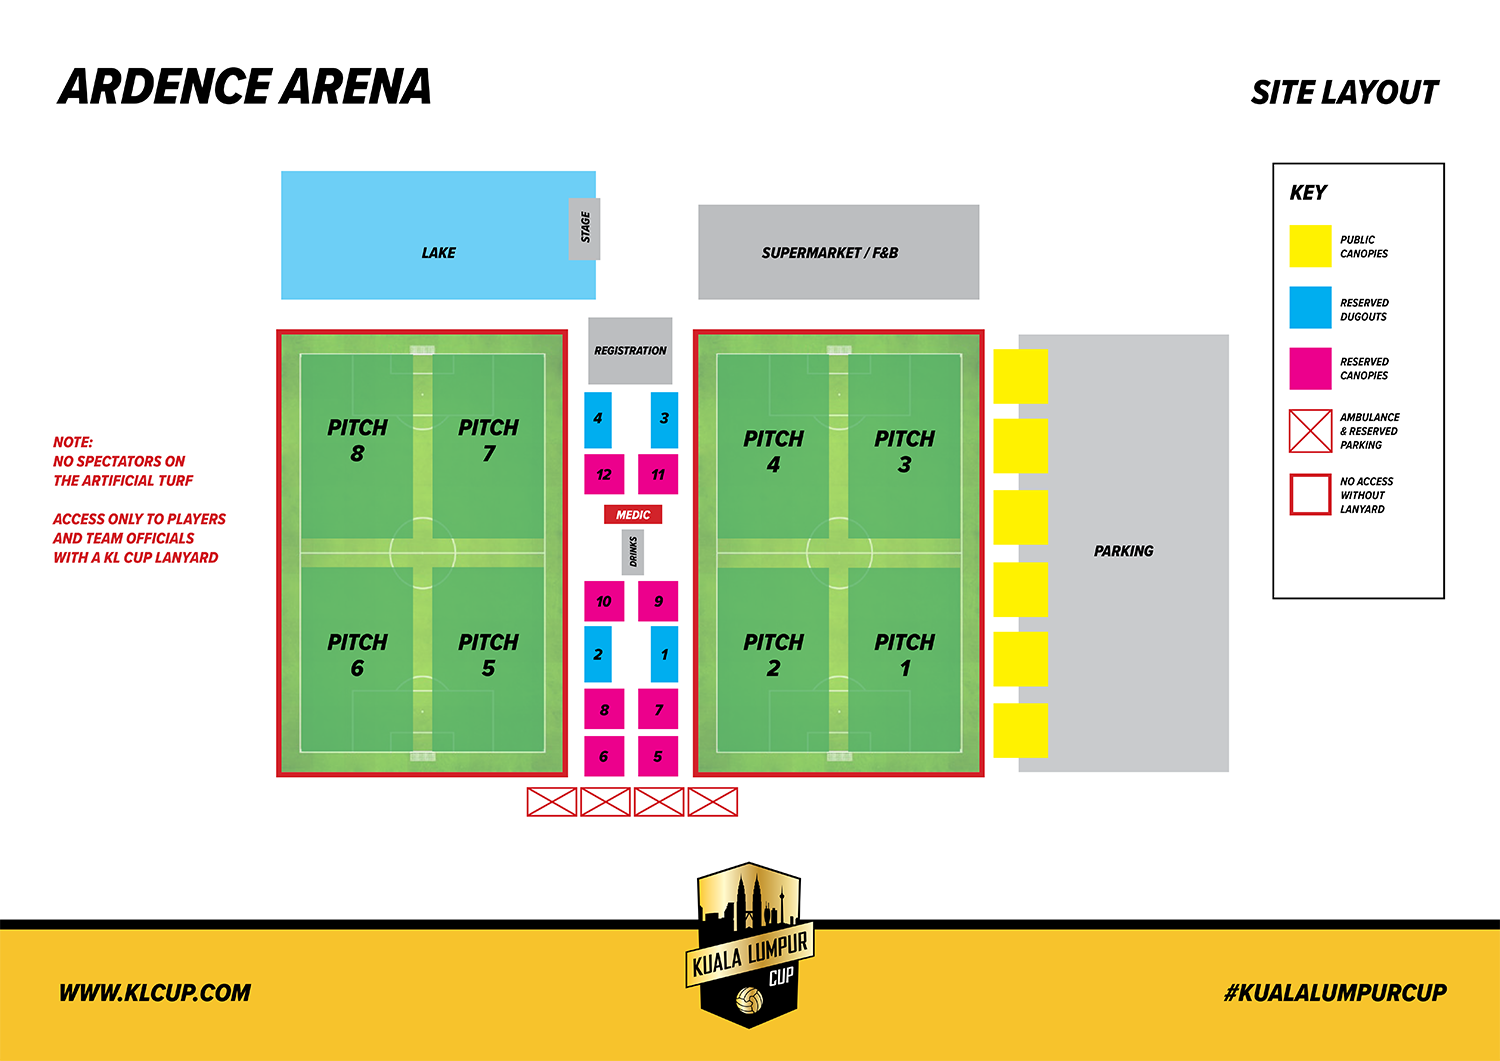 Ardence Arena site plan